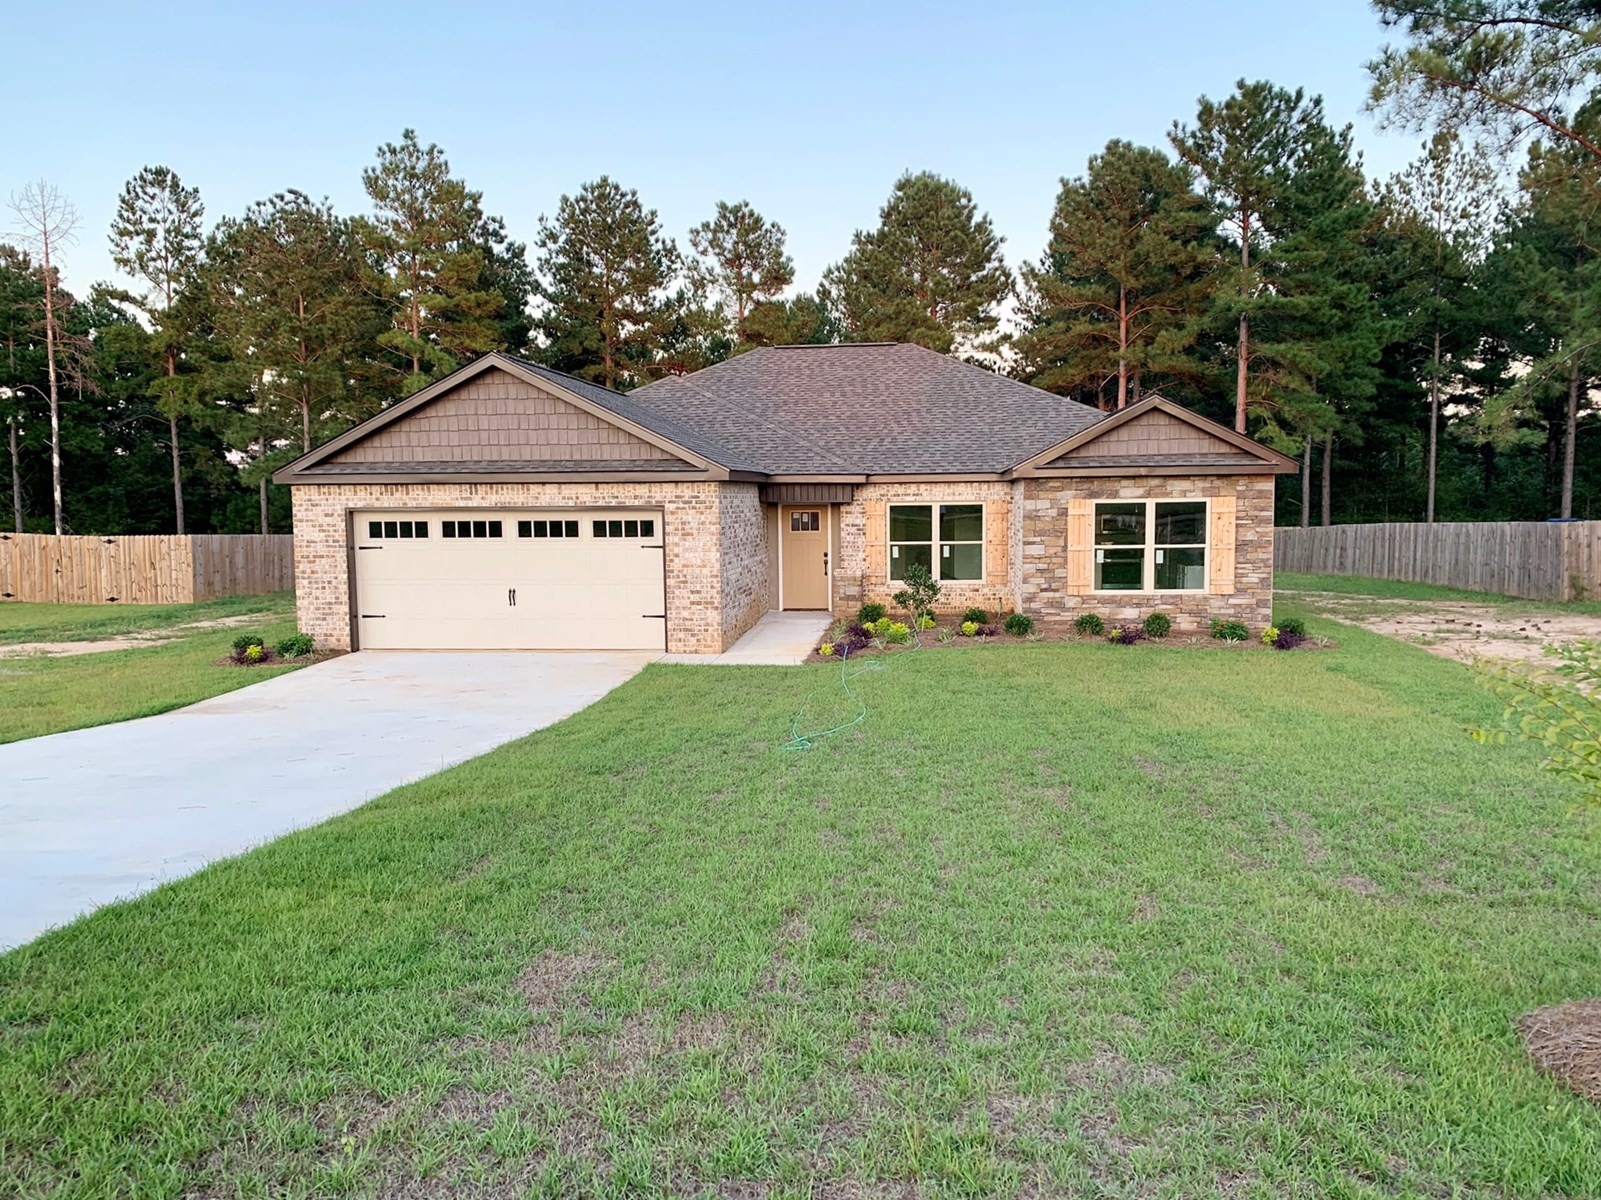 NEW CONSTRUCTION HOME for sale in  Hartford, Alabama